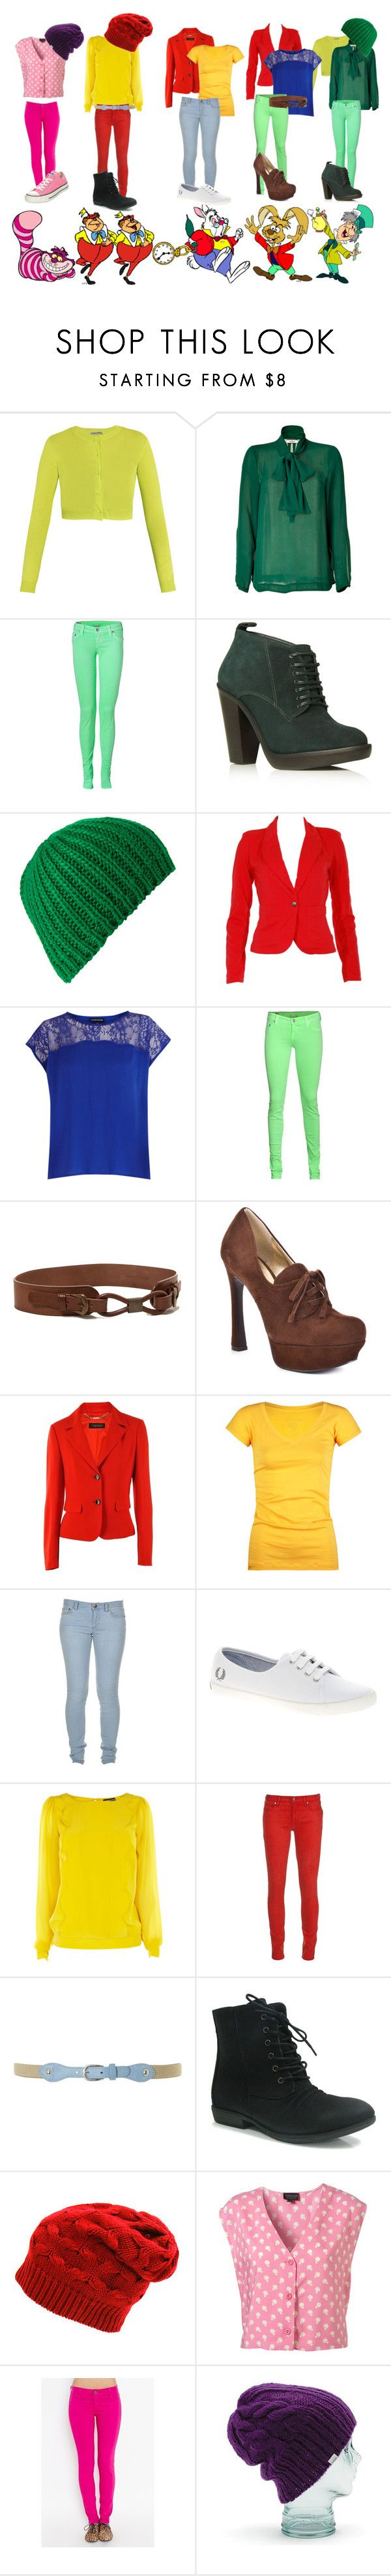 """""""Alice In Wonderland <3"""" by graciefm ❤ liked on Polyvore featuring Tomas Maier, By Malene Birger, True Religion, Carvela, VILA, Warehouse, Surface To Air, GUESS, Strenesse and Full Tilt"""